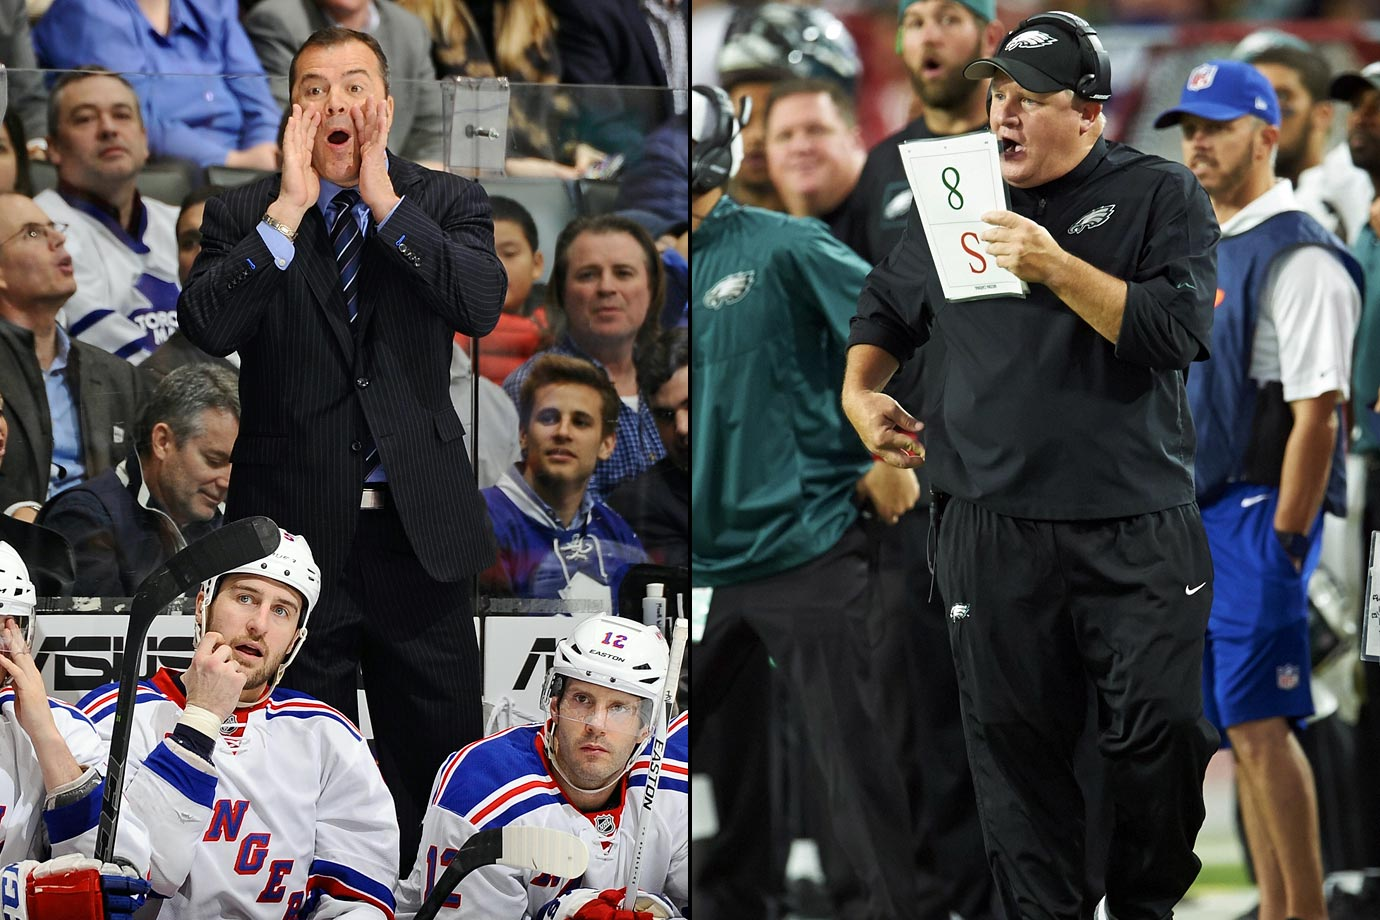 The well-off Rangers signed ex-Canucks bench boss Vigneault in June 2013 to a reported five-year, $10 million deal that was supposedly fat enough to keep him from landing with the Dallas Stars. Kelly has to be feeling pretty sunny in Philadelphia after inking his five-year, $32.5 million deal with the Eagles in January 2013.